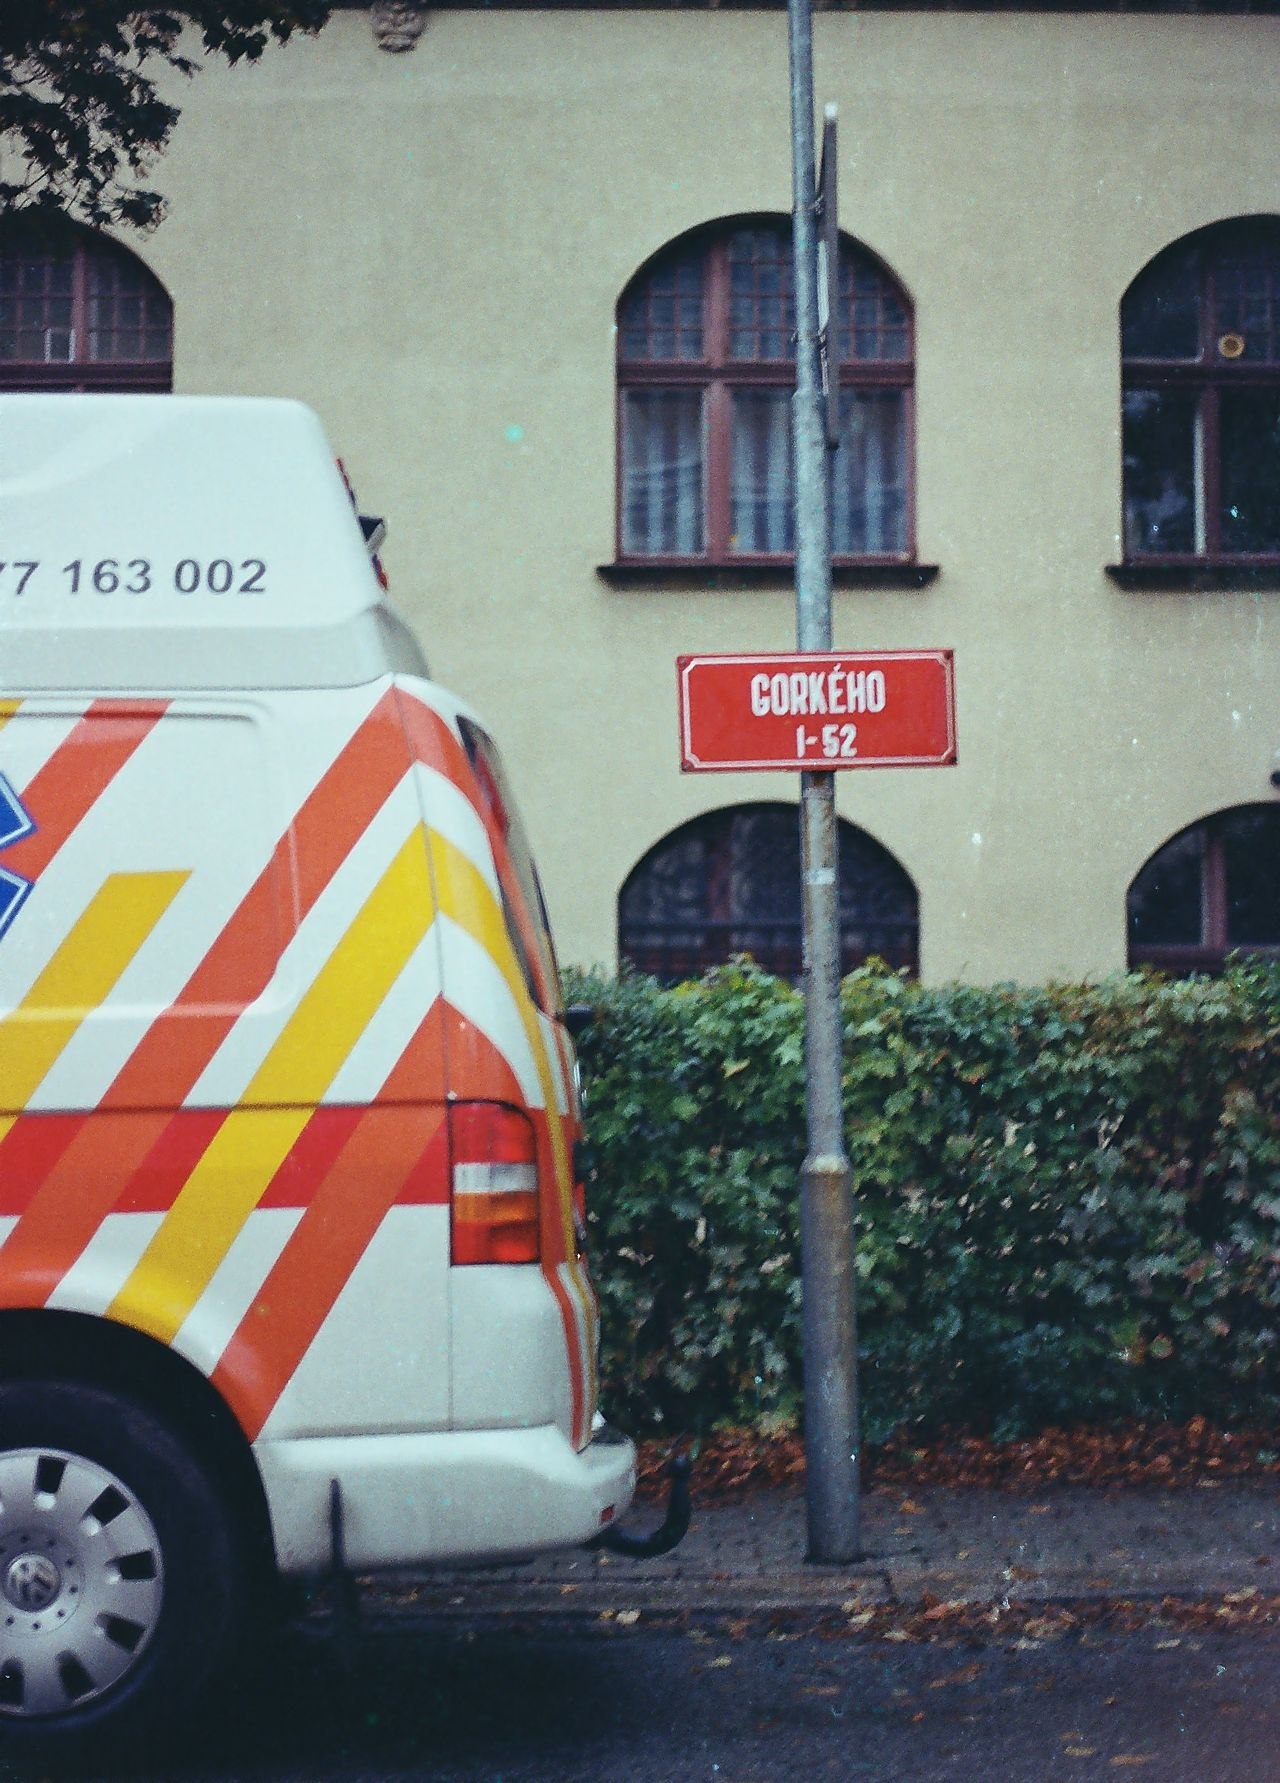 35mm Canon AE-1 Colour Film Filmisnotdead Liberec No People Outdoors Street